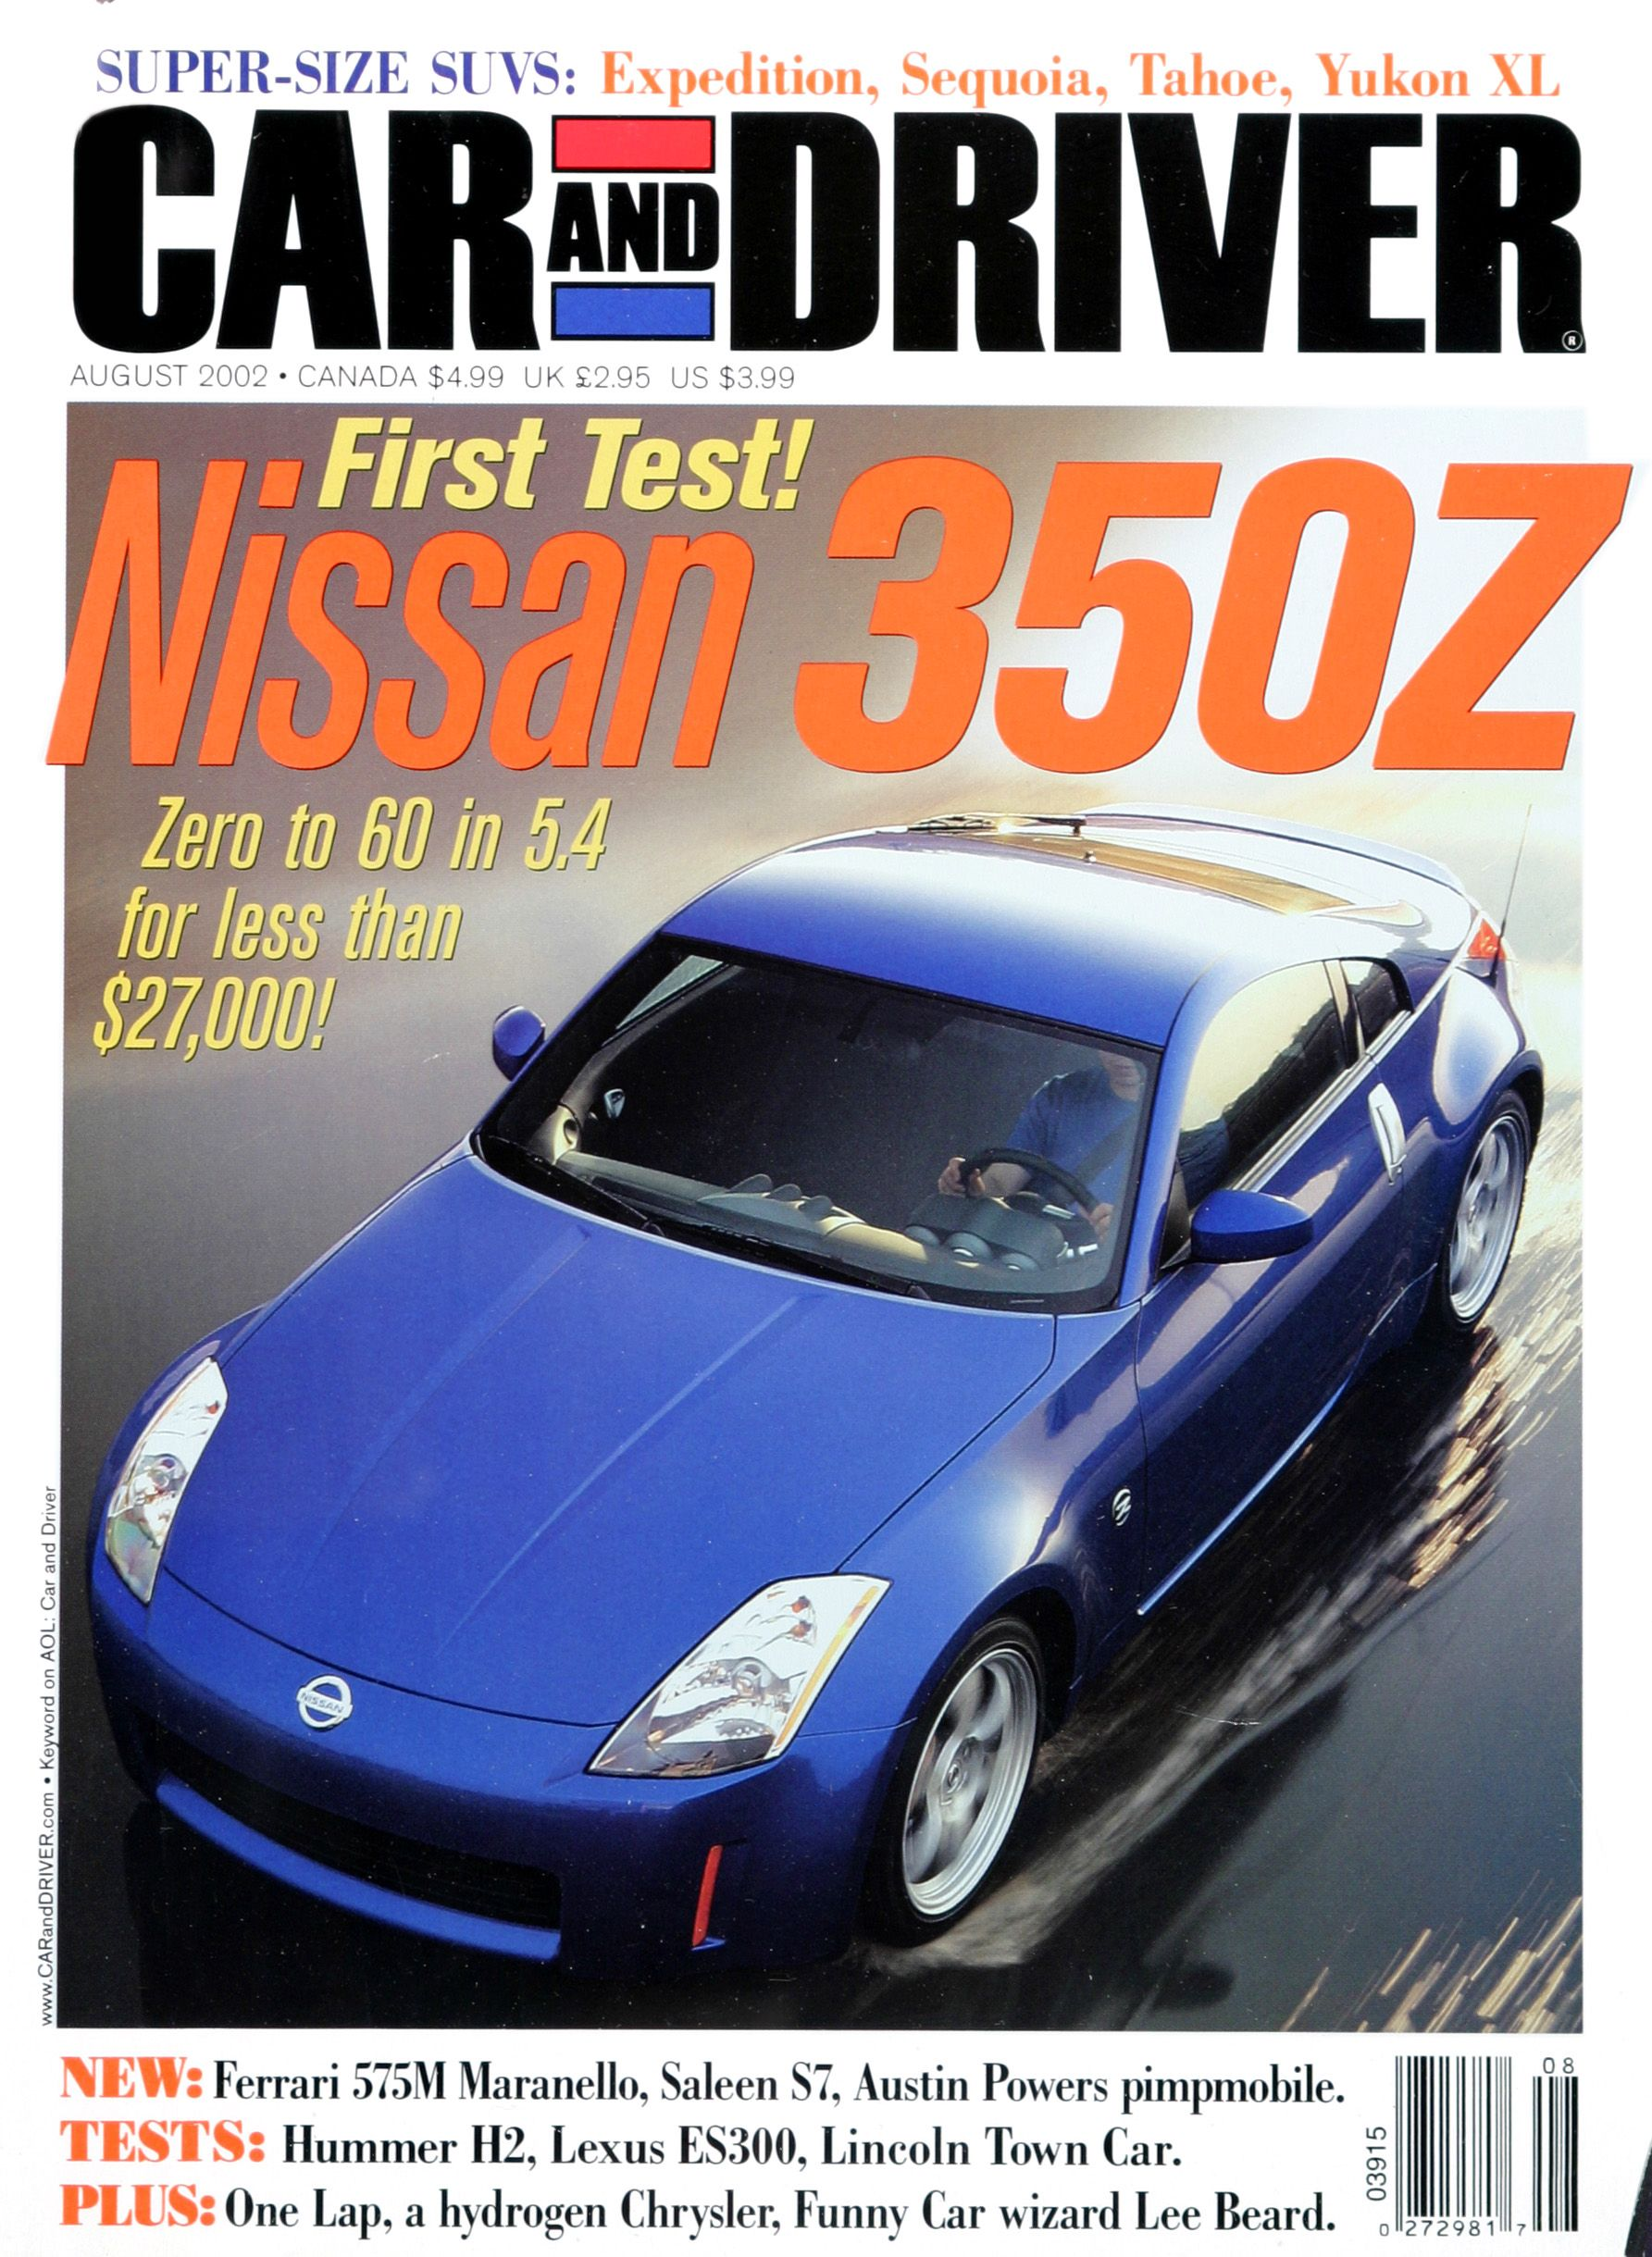 Going Millennial: The Car and Driver Covers of the 2000s and